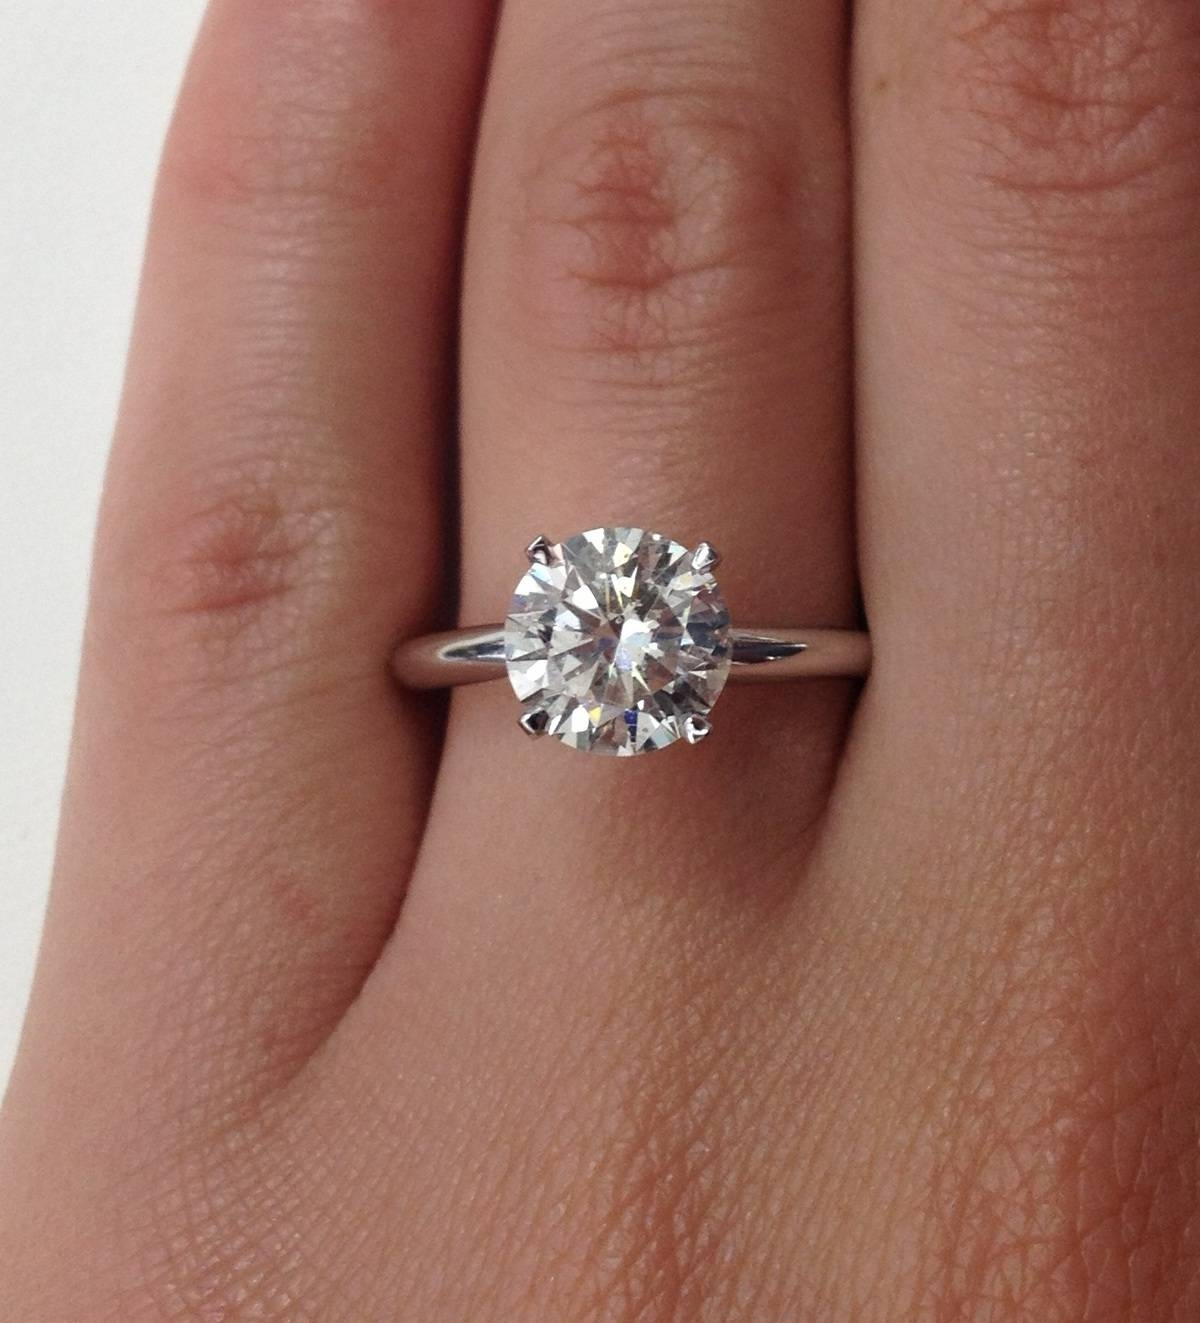 rings and ring engagement show carat your please me diamond solitaire